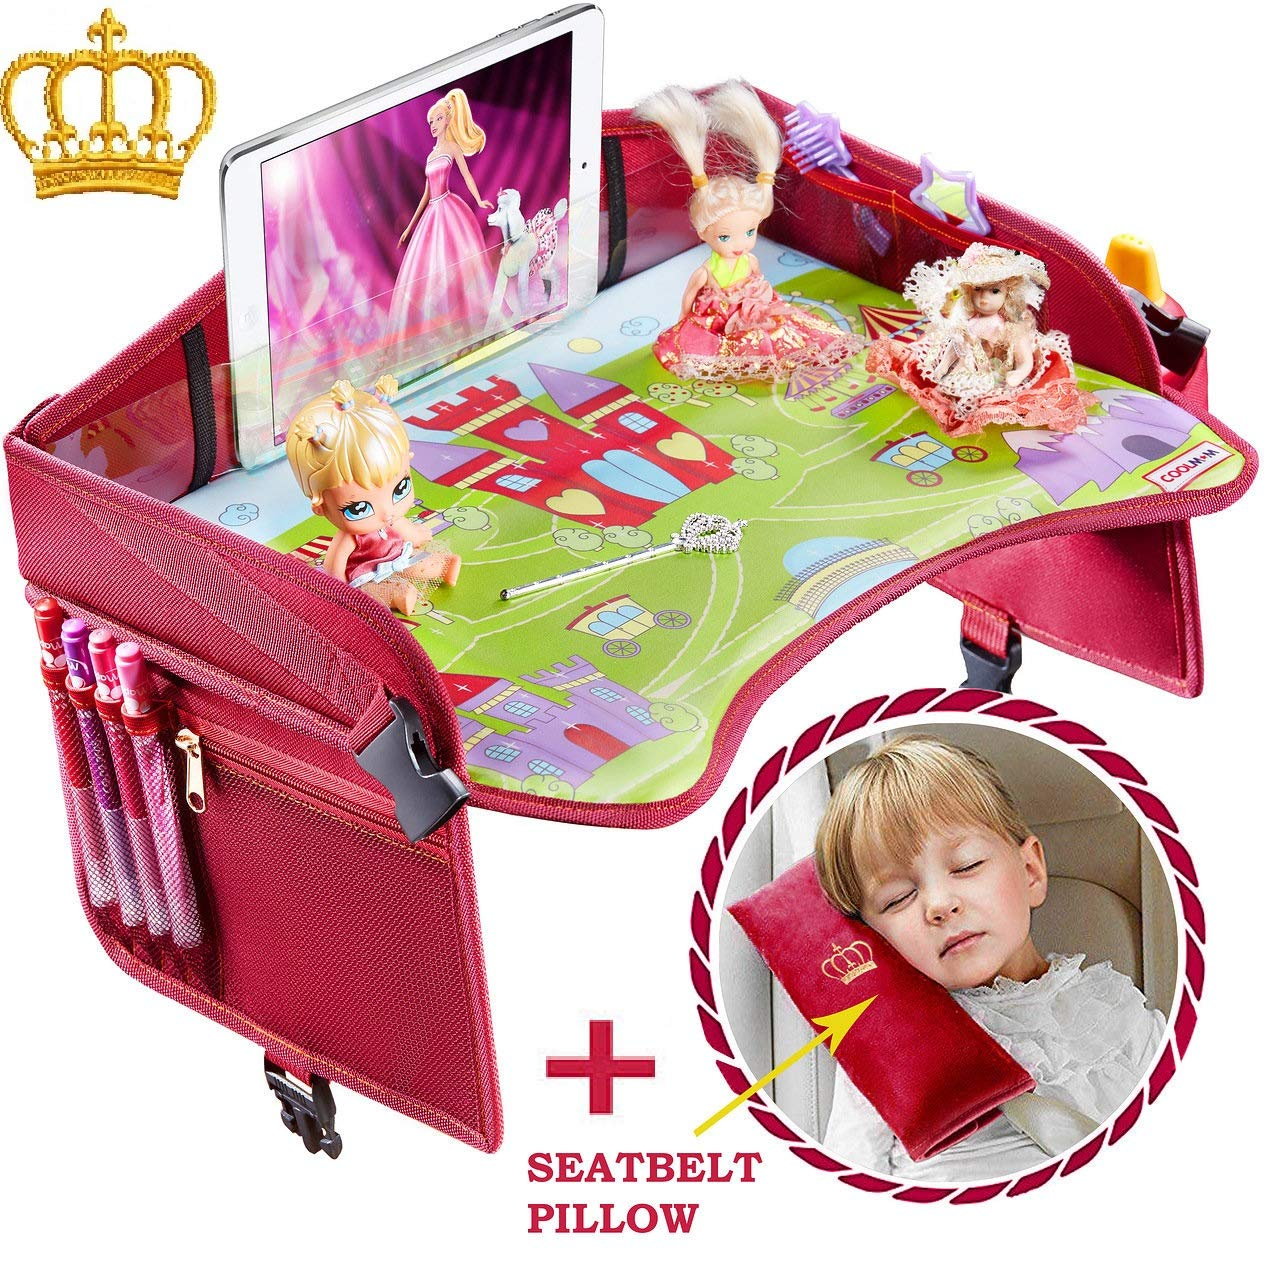 Travel Tray – Ideal as Kids Travel Tray – Toddler Travel Tray & Baby Stroller Tray – Travel Activity Tray & Play Tray – Baby Snack Tray & Kid's Car Seat Tray - Play Table (Premium Red/Pink) Home Innovations group